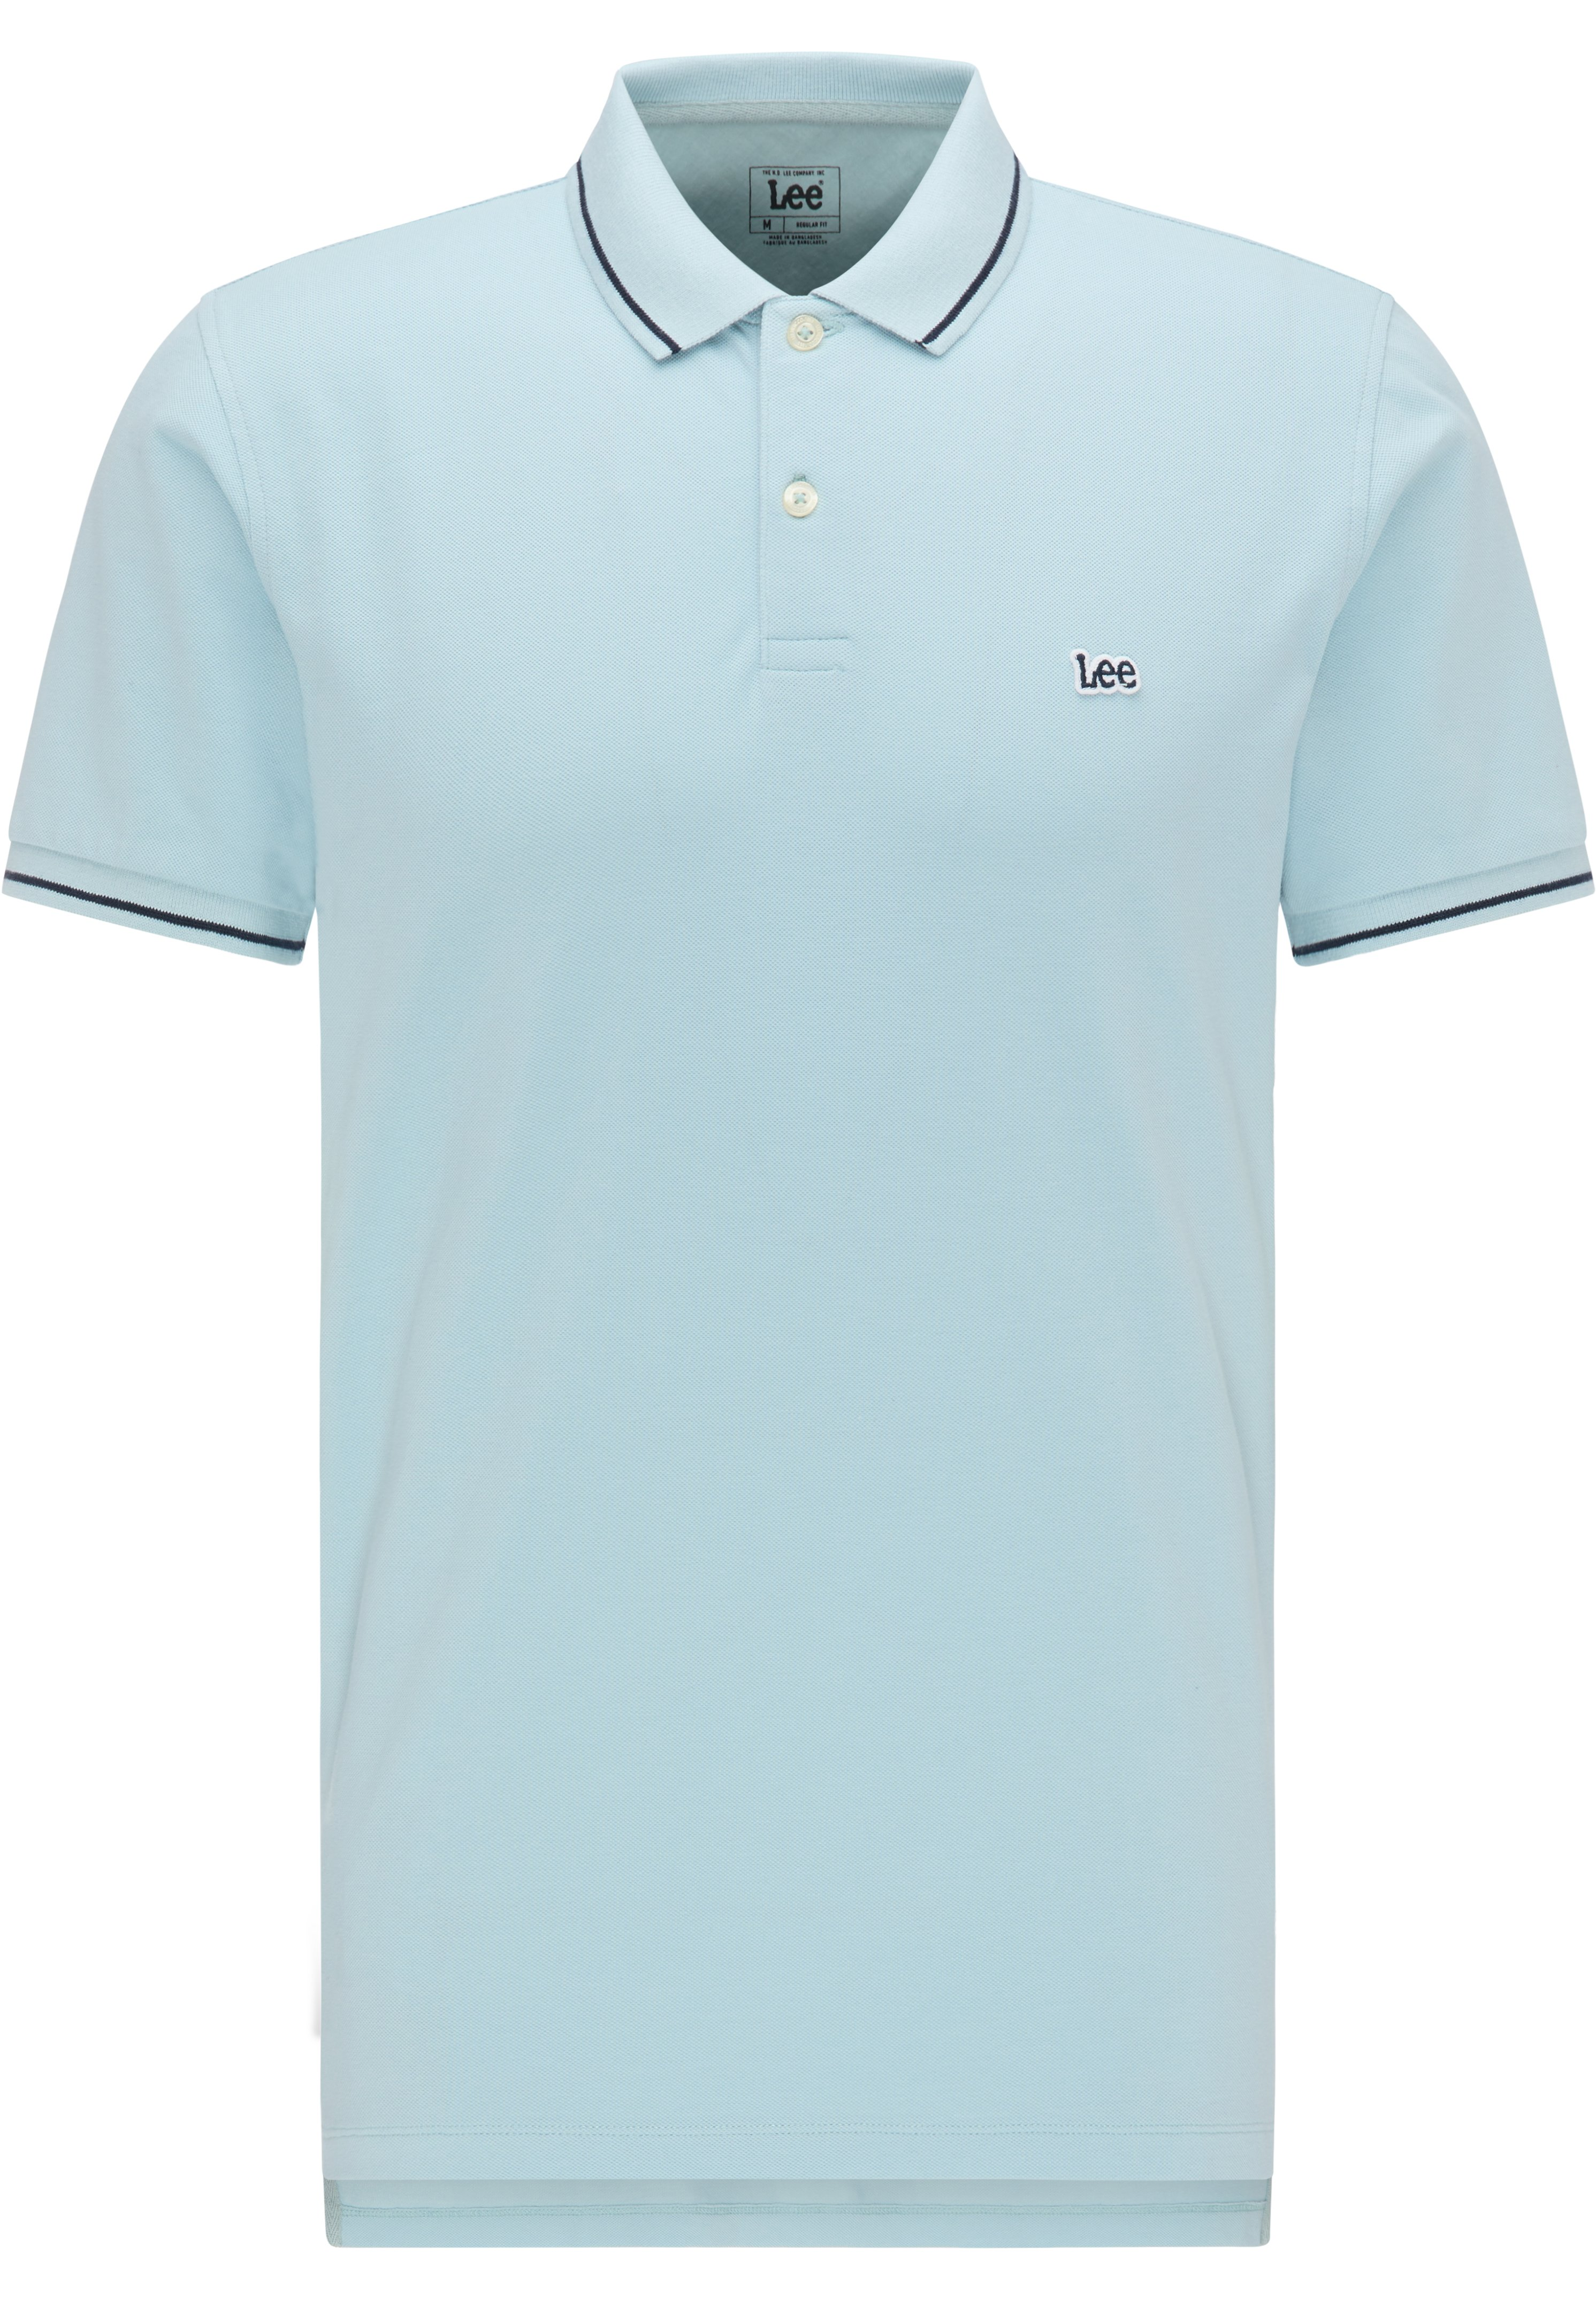 Lee Polo - sterling blue ZHnsB